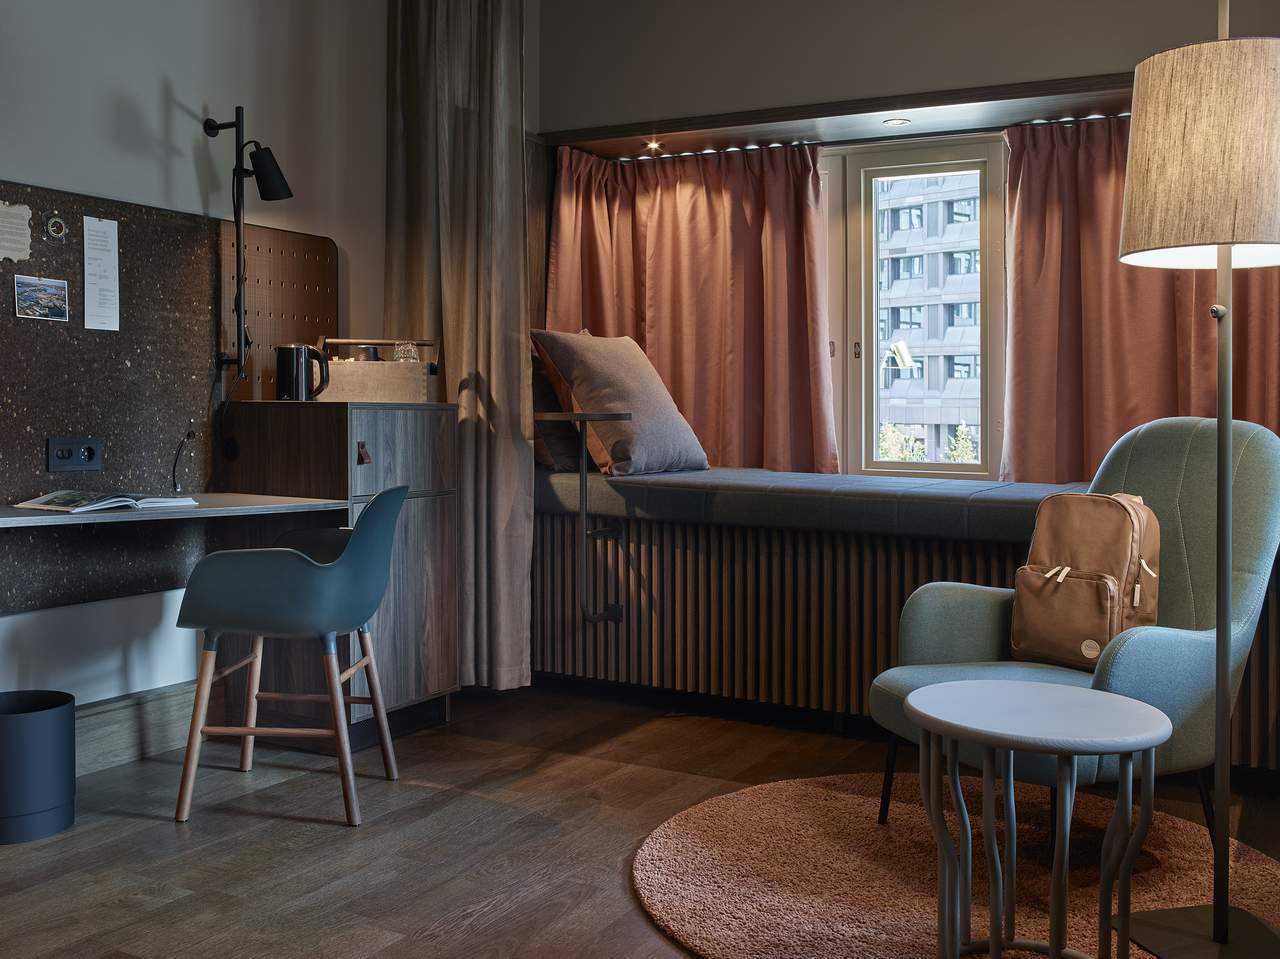 Hotels in Stockholm. A room at Downtown Camper in central Stockholm. Scandinavian design and natural, varm colors.